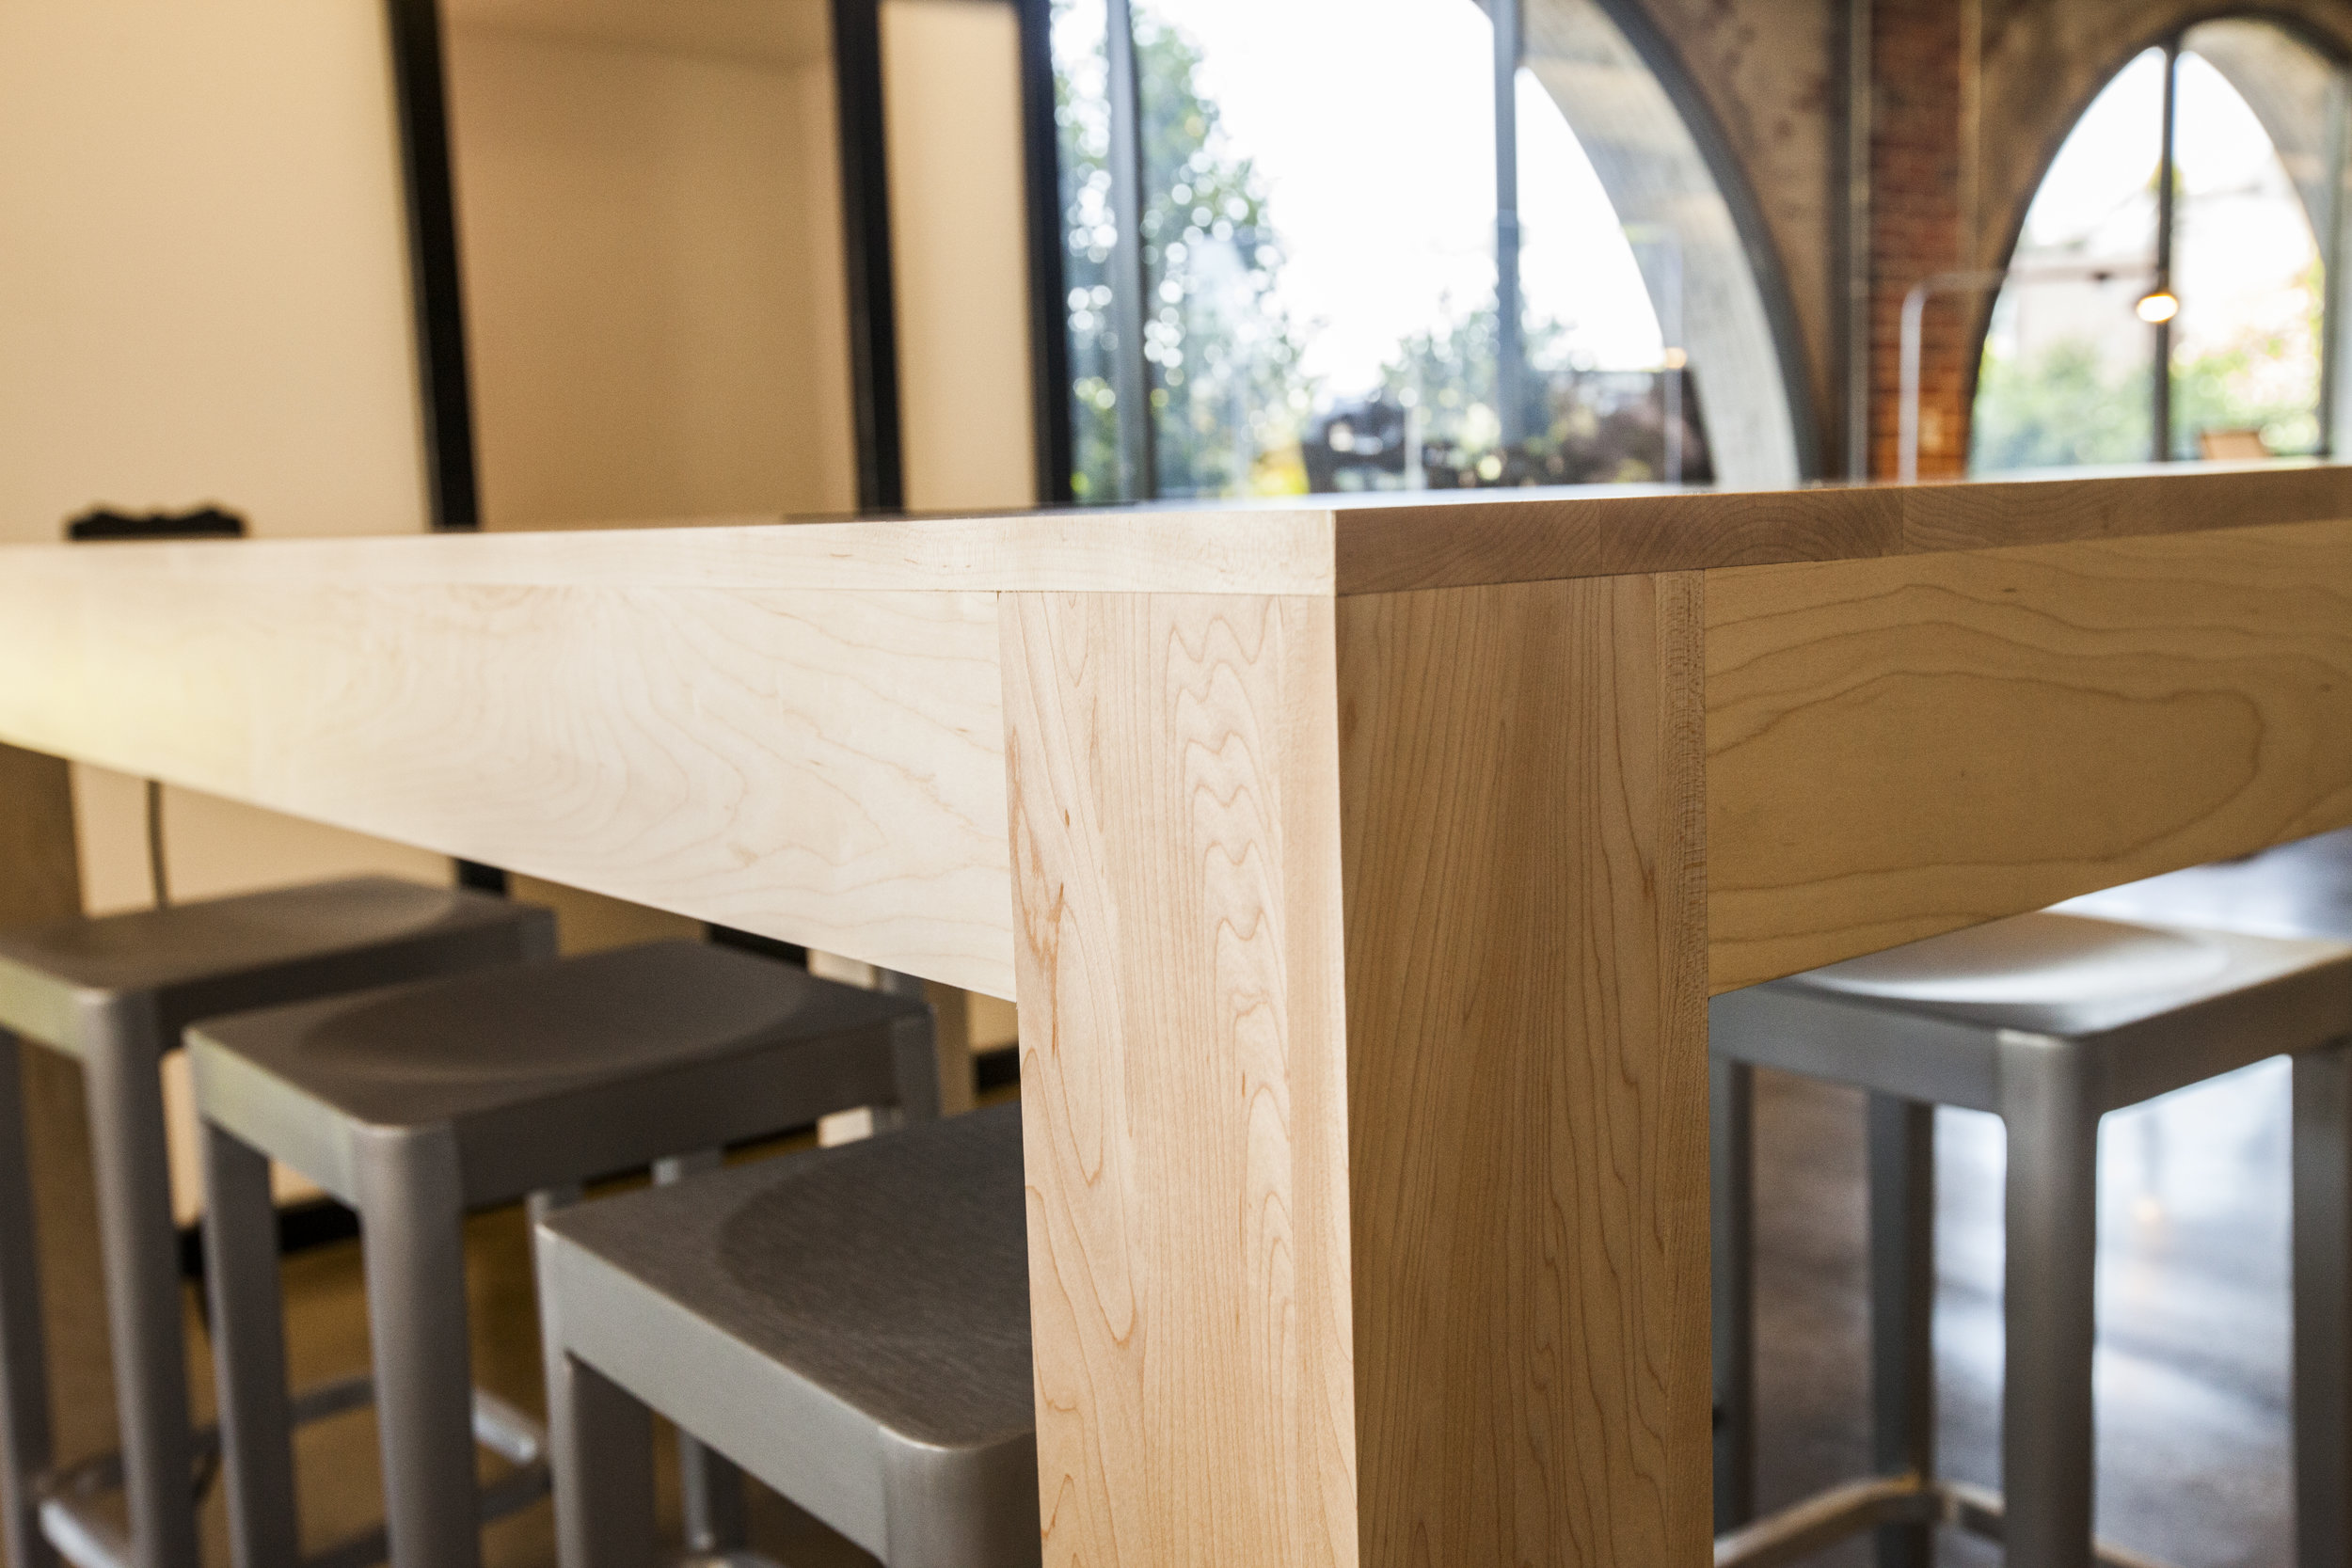 Sharp square edges on this table design.